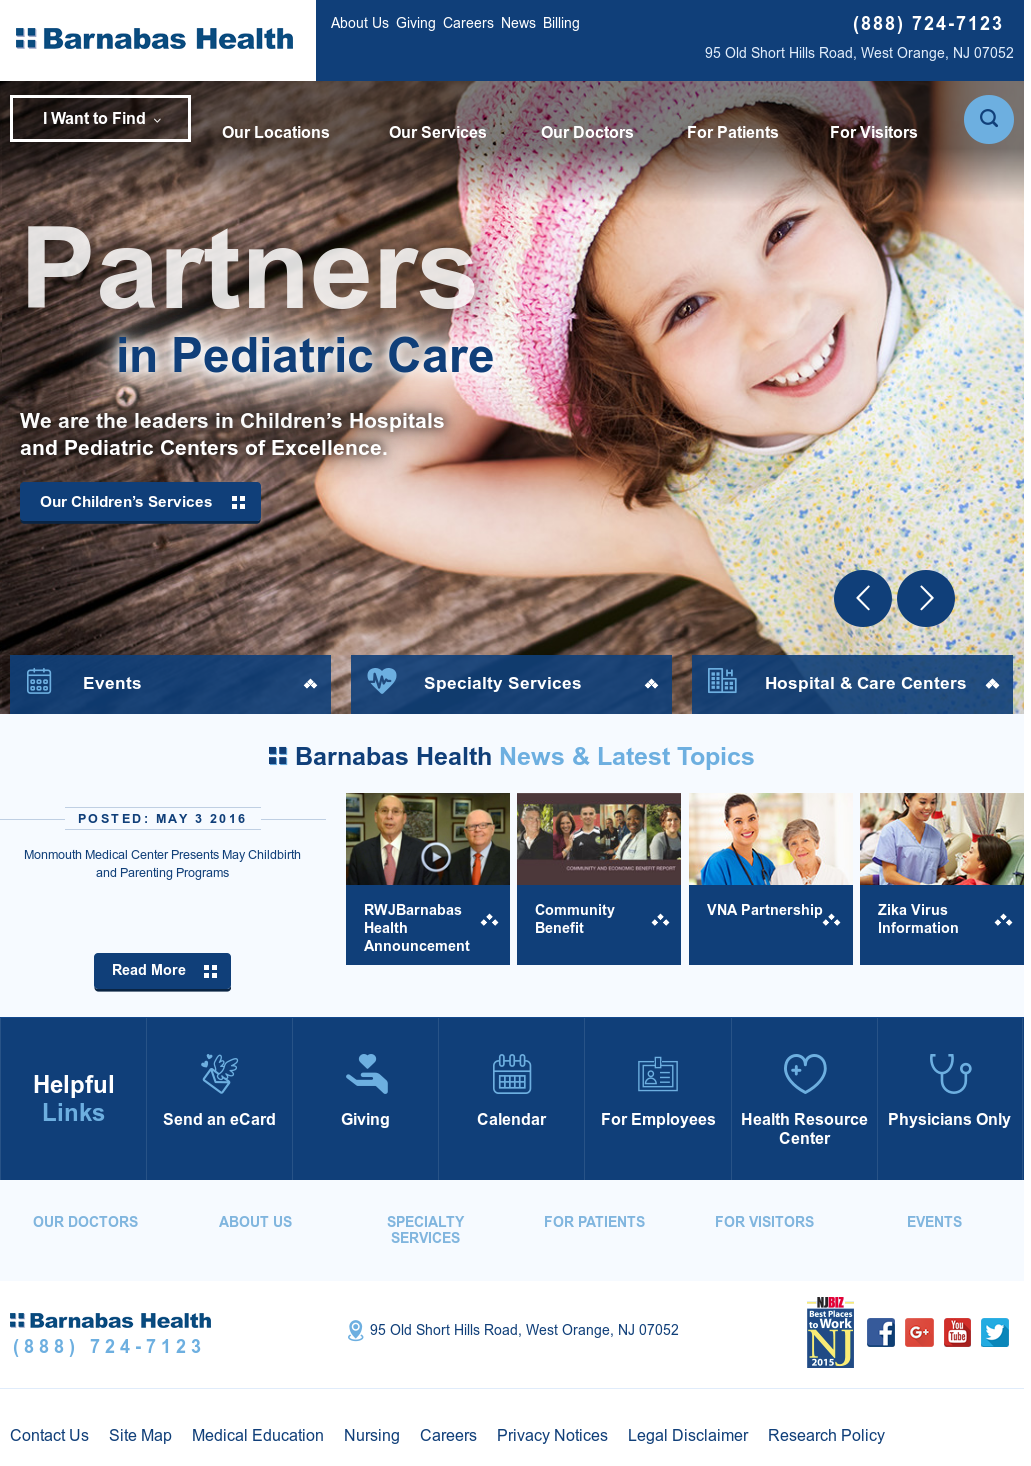 Barnabas Health Competitors, Revenue and Employees - Owler